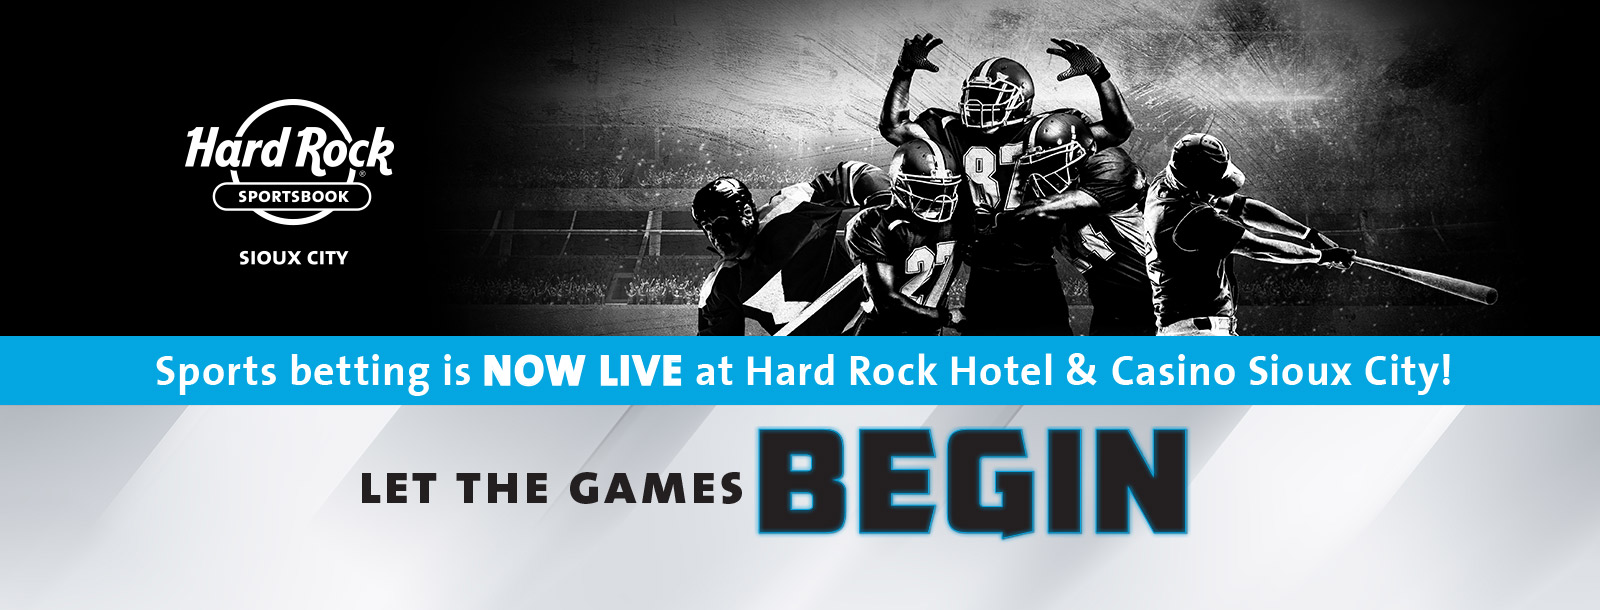 hard rock sioux city sportsbook